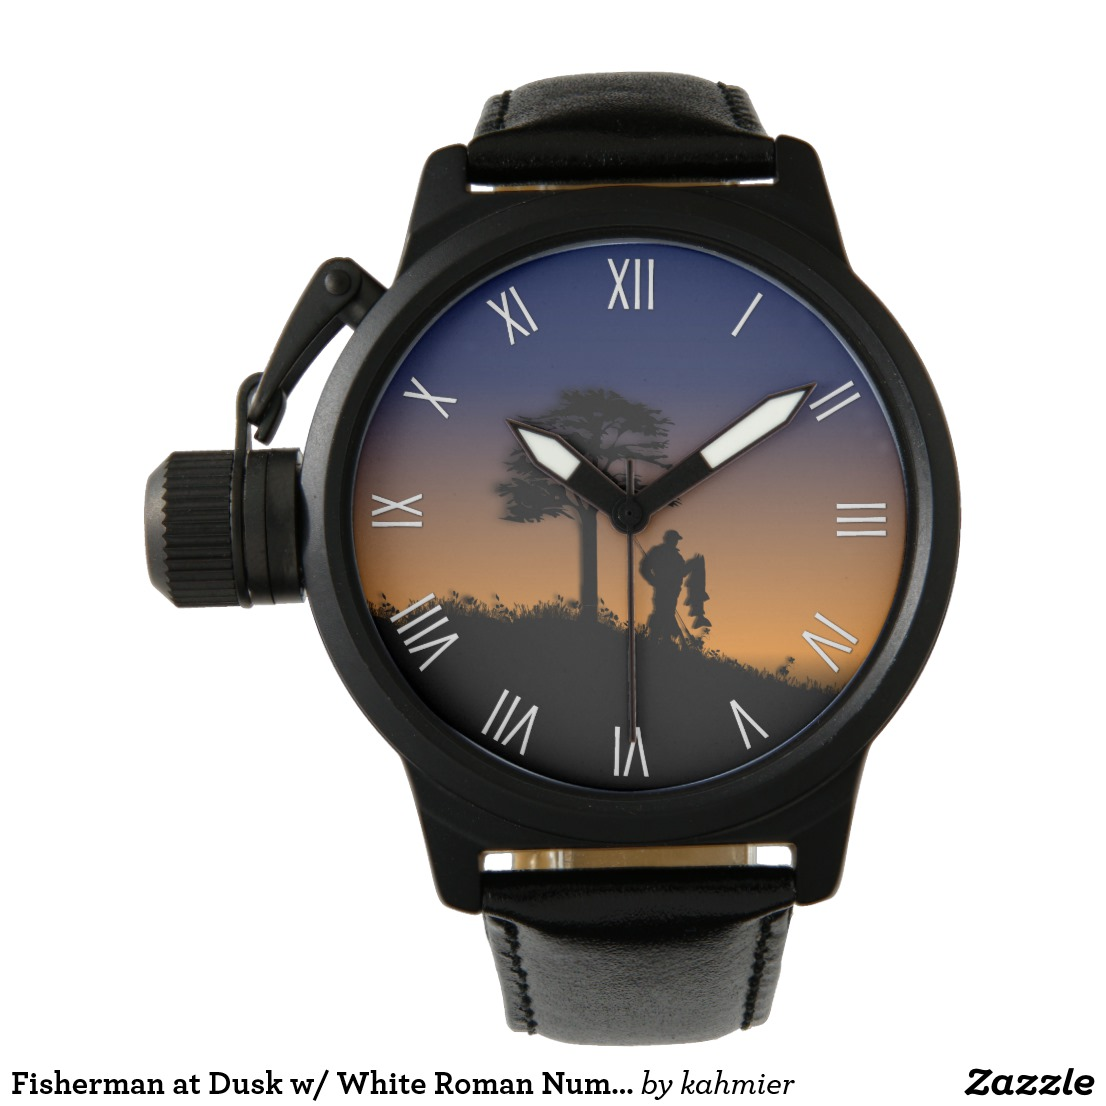 Fisherman at Dusk w/ White Roman Numerals Watch